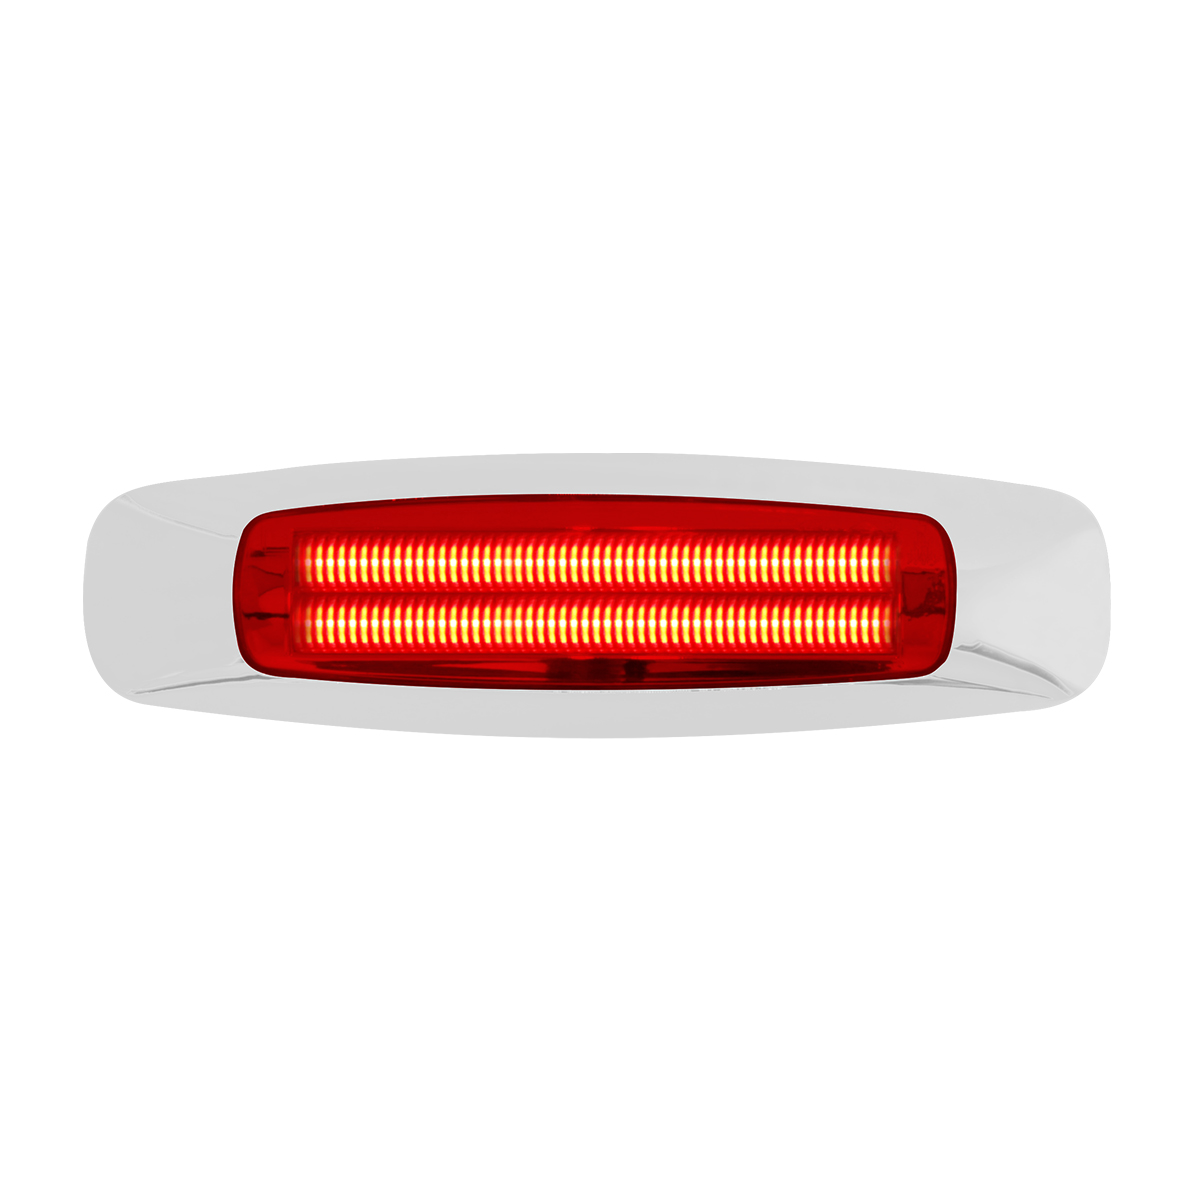 "74843 5-3/4"" Rectangular Prime LED Marker Light in Red/Red"